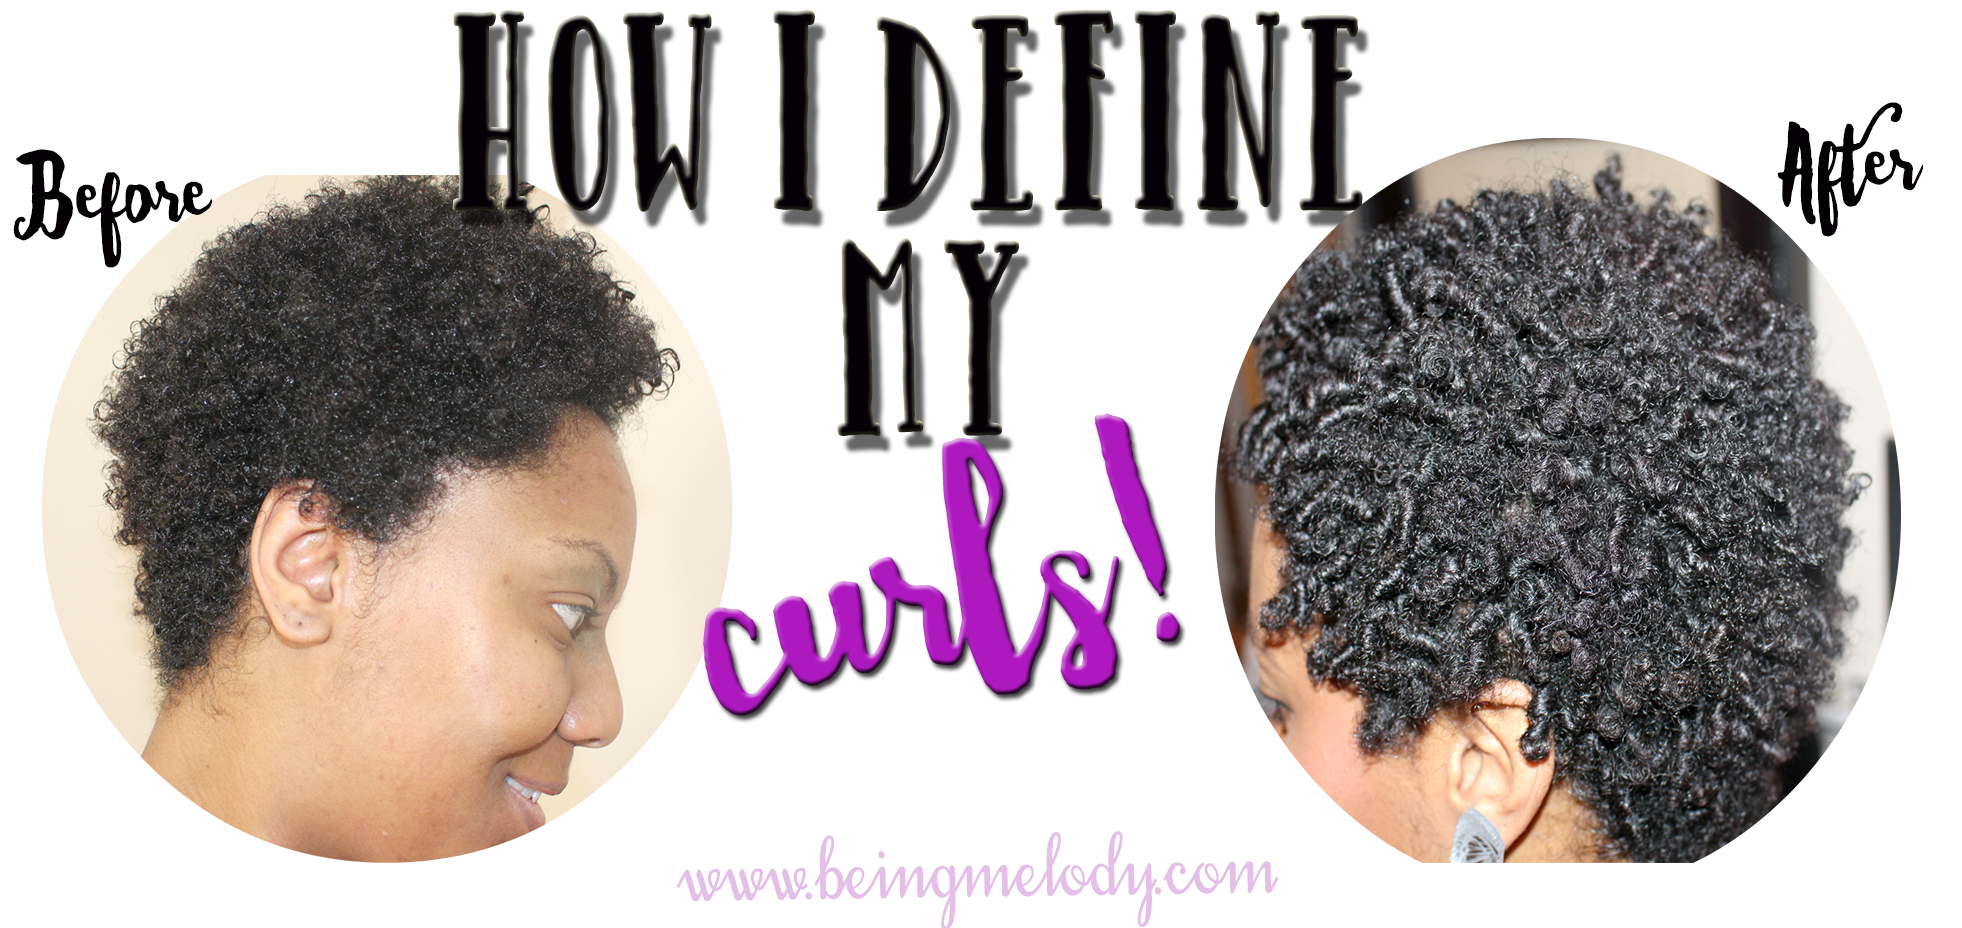 Remarkable How I Define My Natural Hair With Finger Coils Beingmelody Com Short Hairstyles For Black Women Fulllsitofus